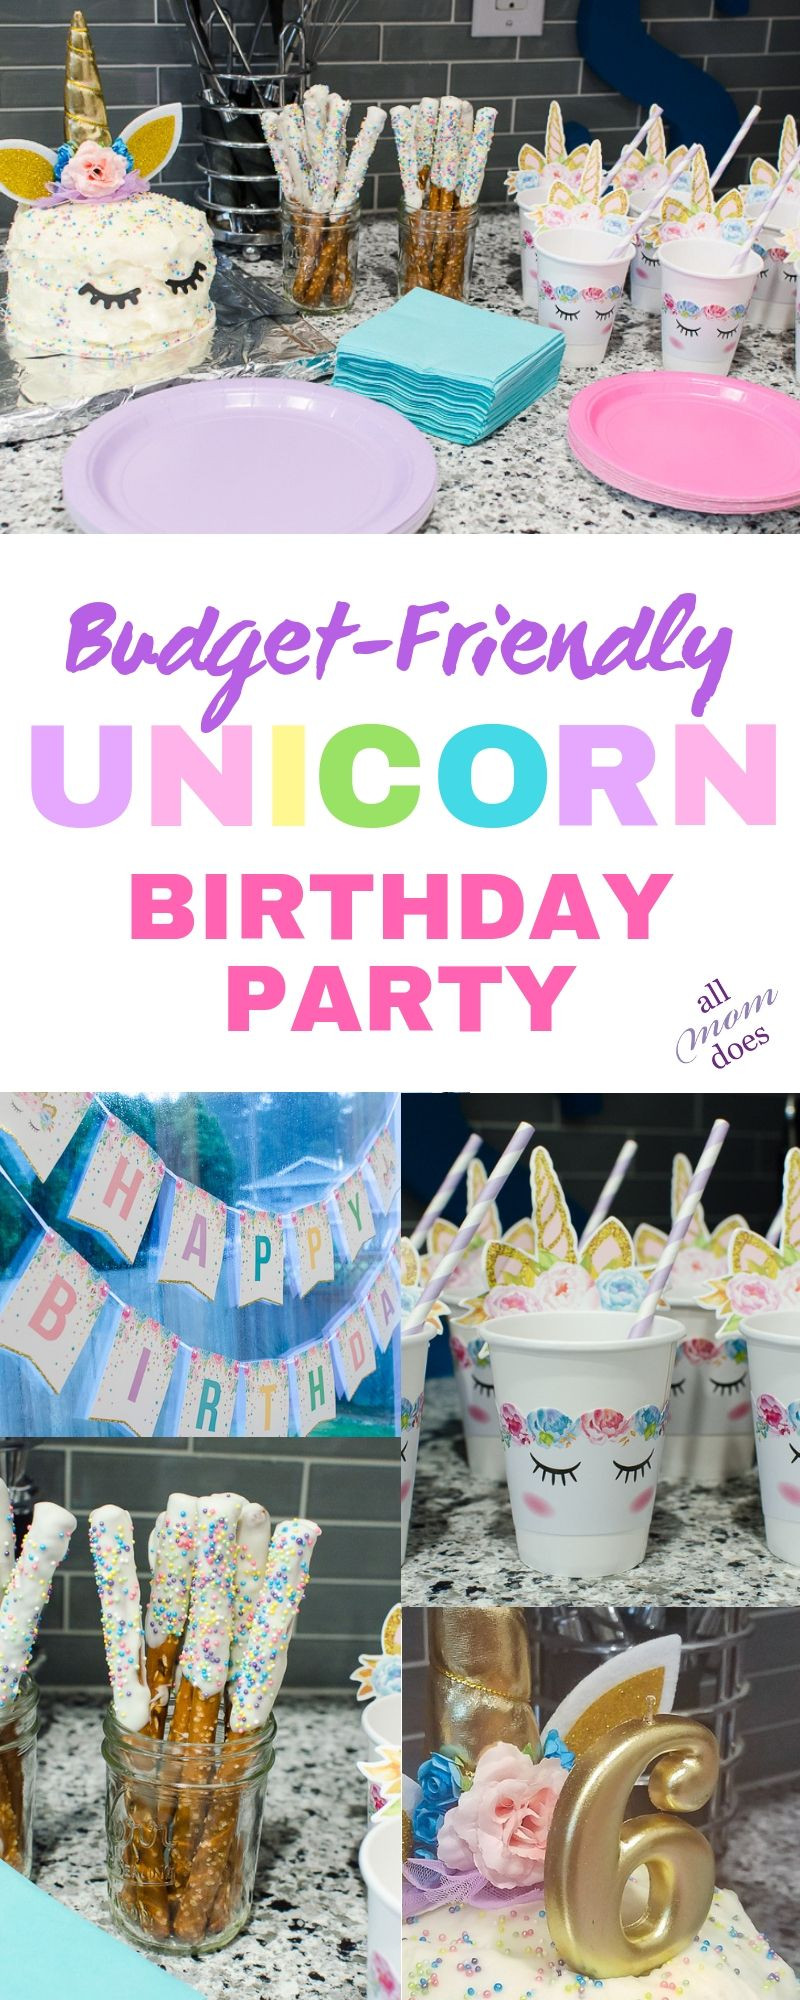 Best ideas about Cheap Birthday Ideas . Save or Pin Bud Friendly Unicorn Birthday Party in 2019 Now.